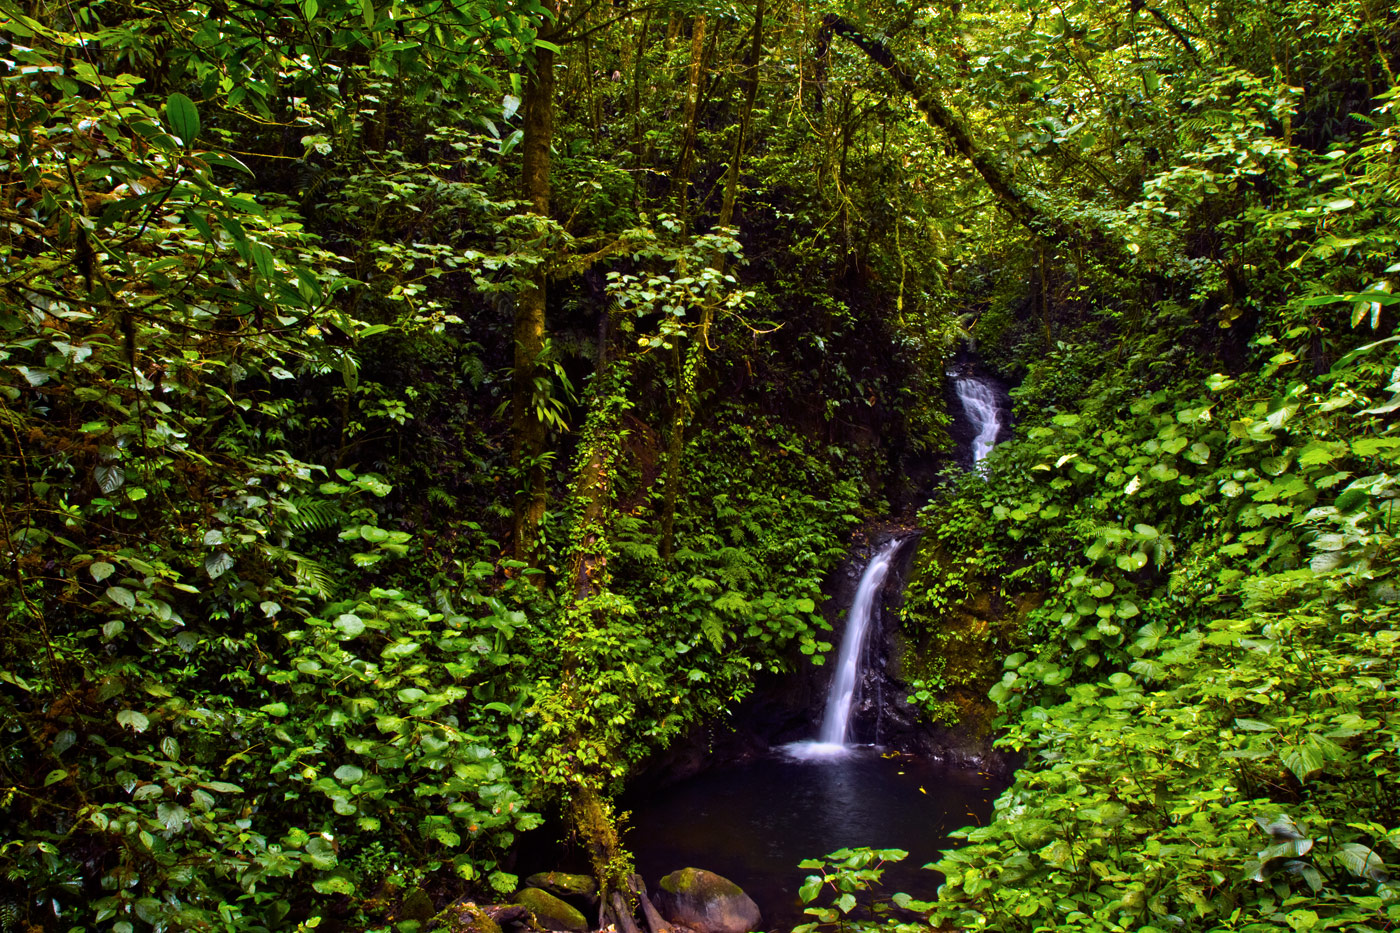 Nick-Zantop-Photography-Rainforest-6